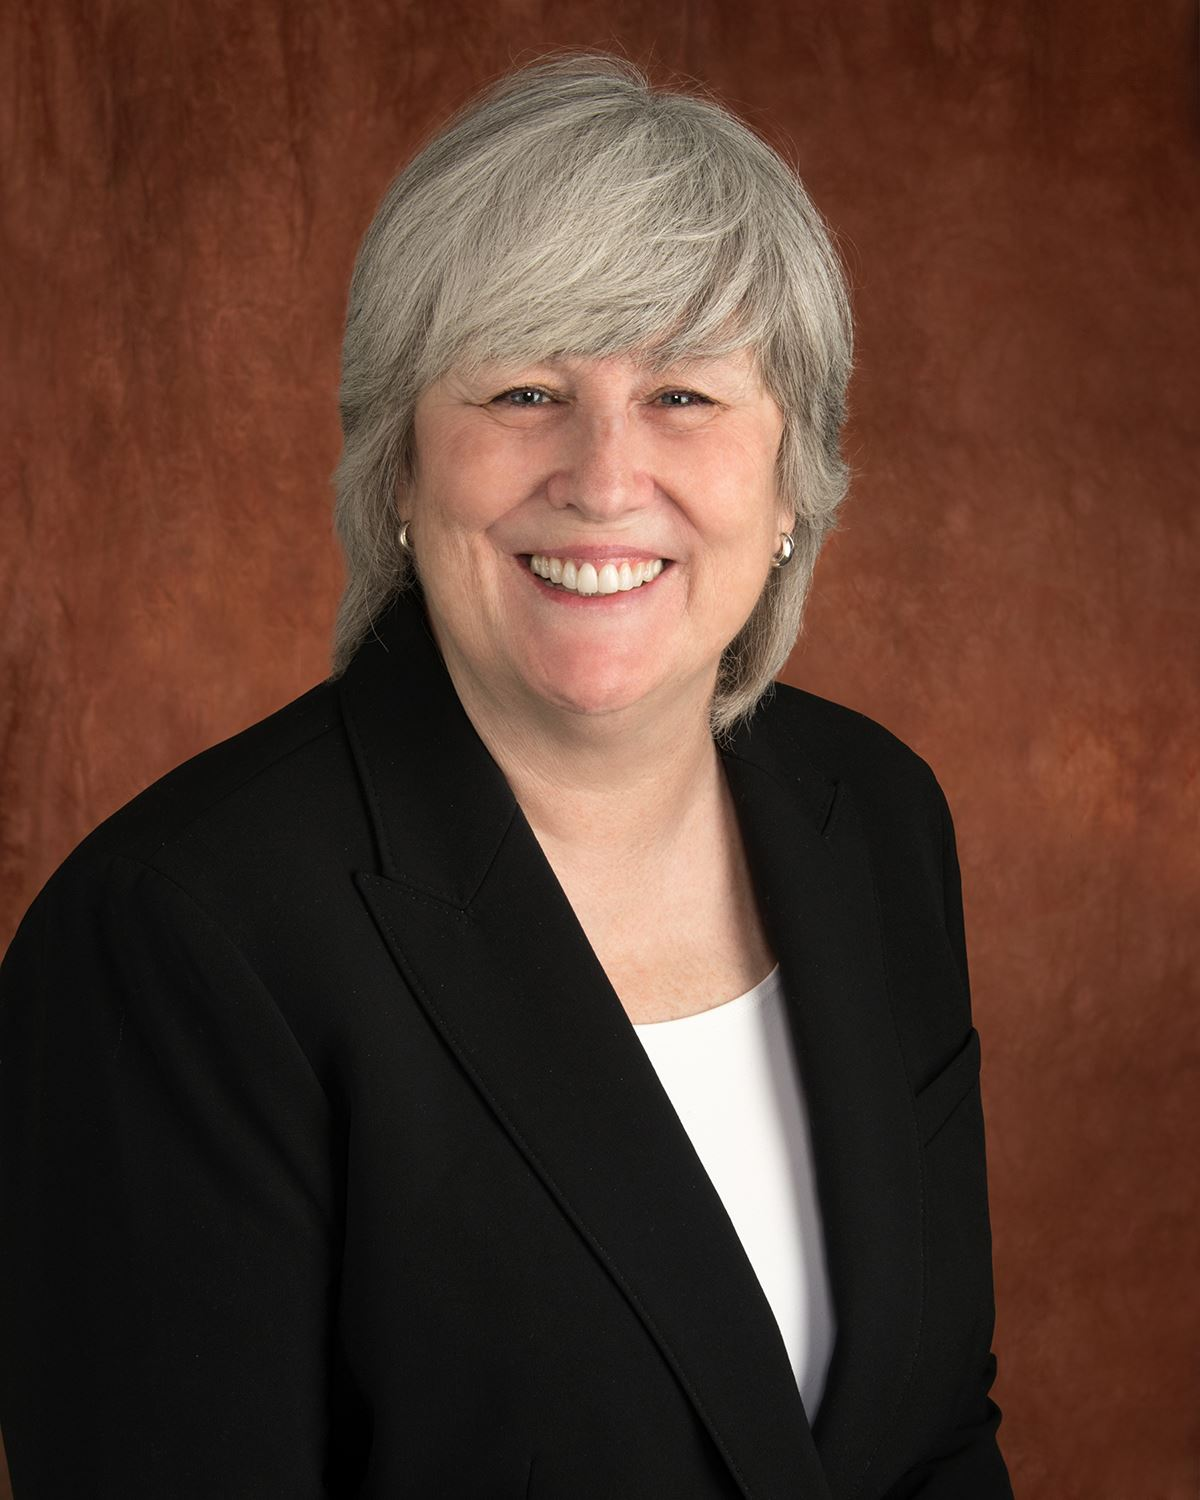 This is a photo of Council Member Peggy Shepard.